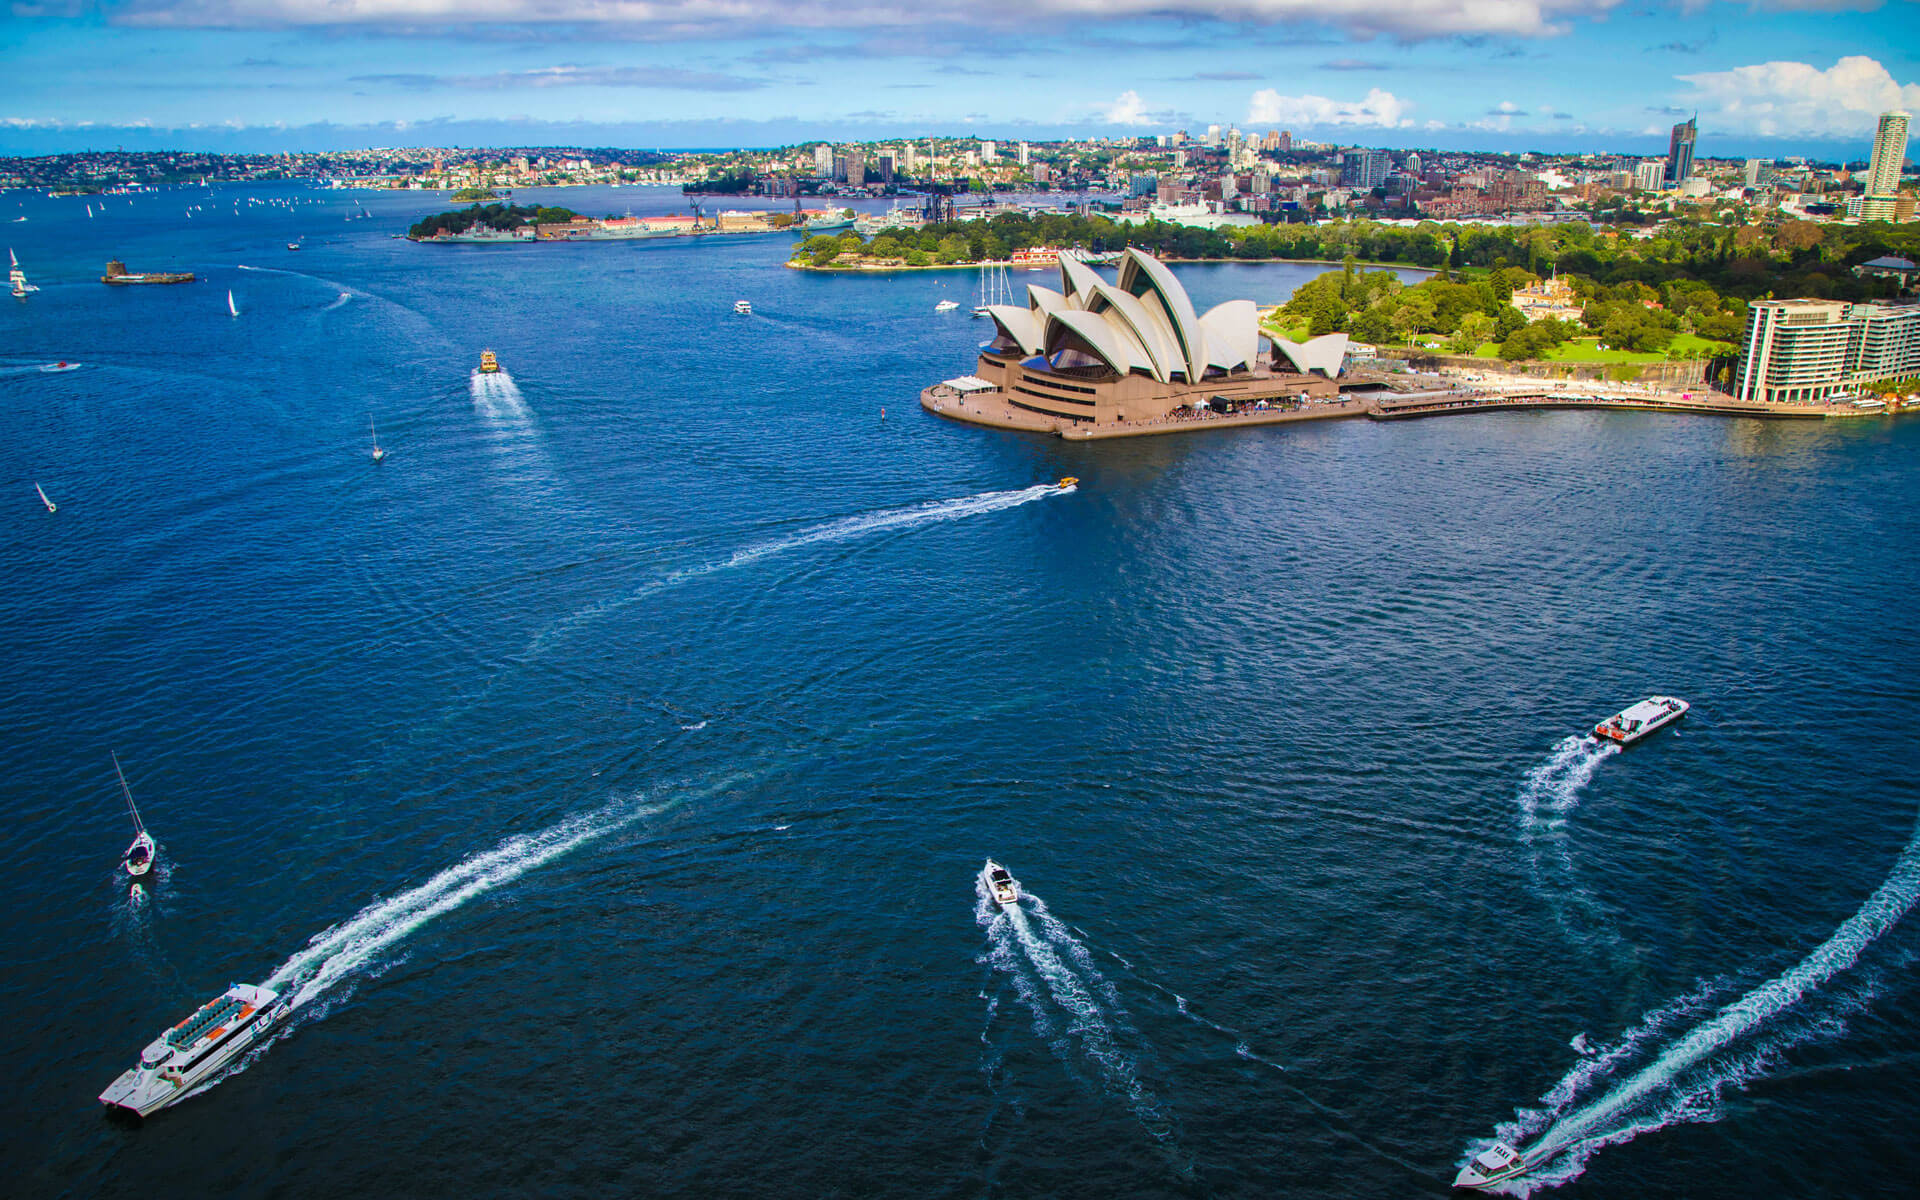 Sydney Harbour - Sydney, New South Wales